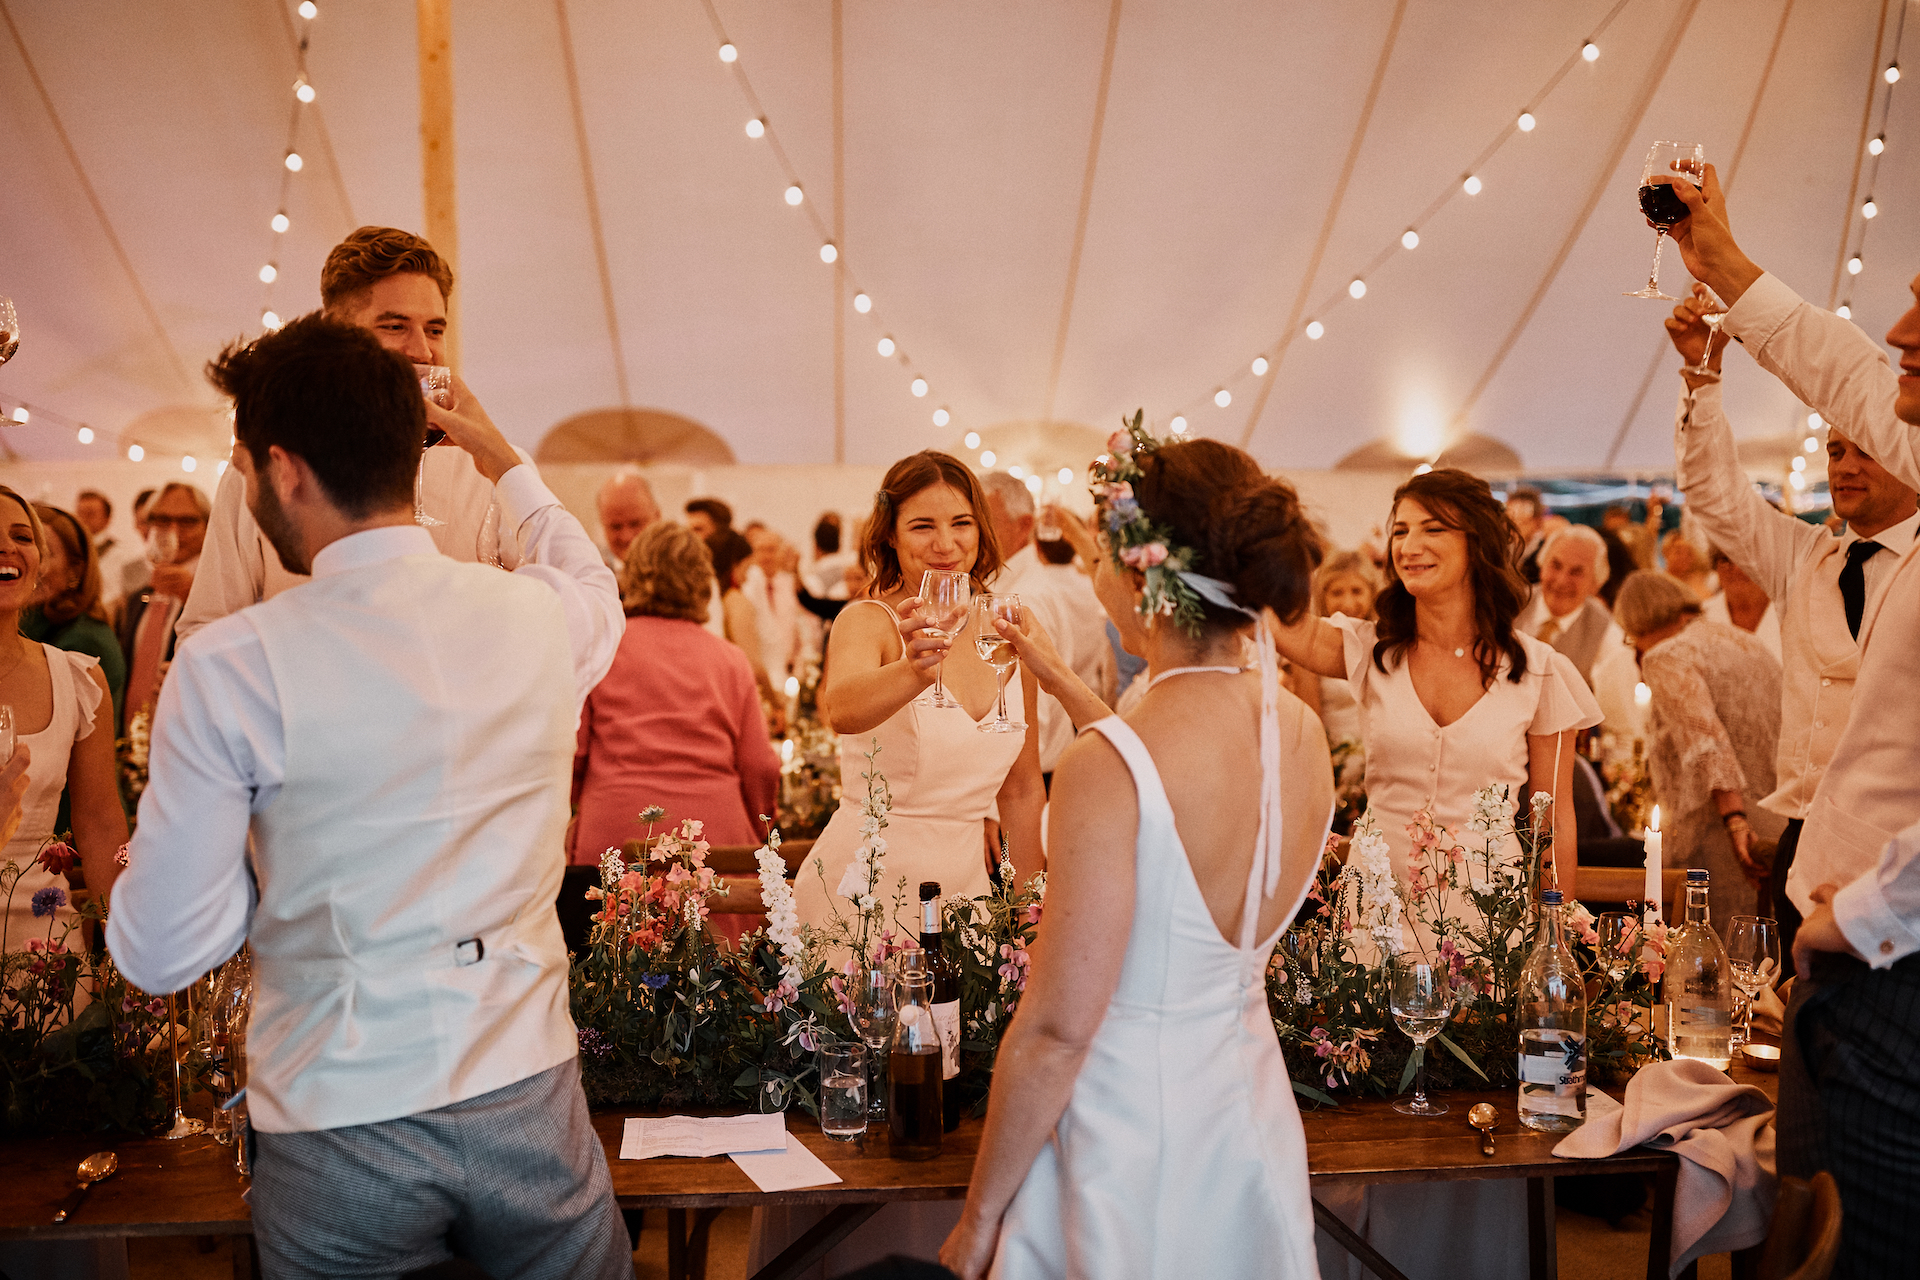 PapaKata Couple Claudia & Jimmy Sperry Tent Wedding at Norton Hall captured by Benjamin Wheeler- A Toast To The Happy Couple